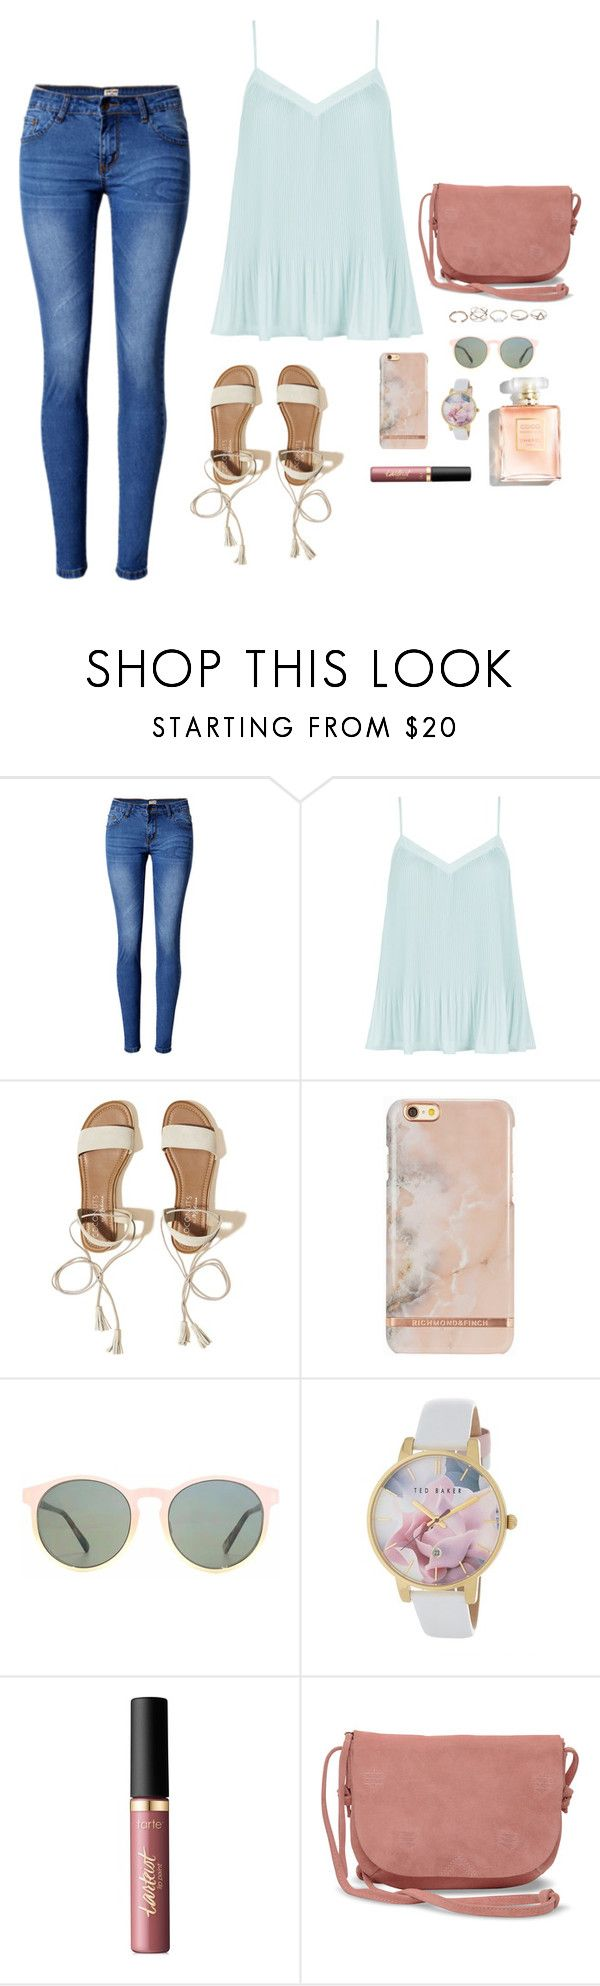 """""""Pastel Lady"""" by rara31 ❤ liked on Polyvore featuring WithChic, New Look, Hollister Co., HOOK LDN, Ted Baker, tarte, TOMS and GUESS"""